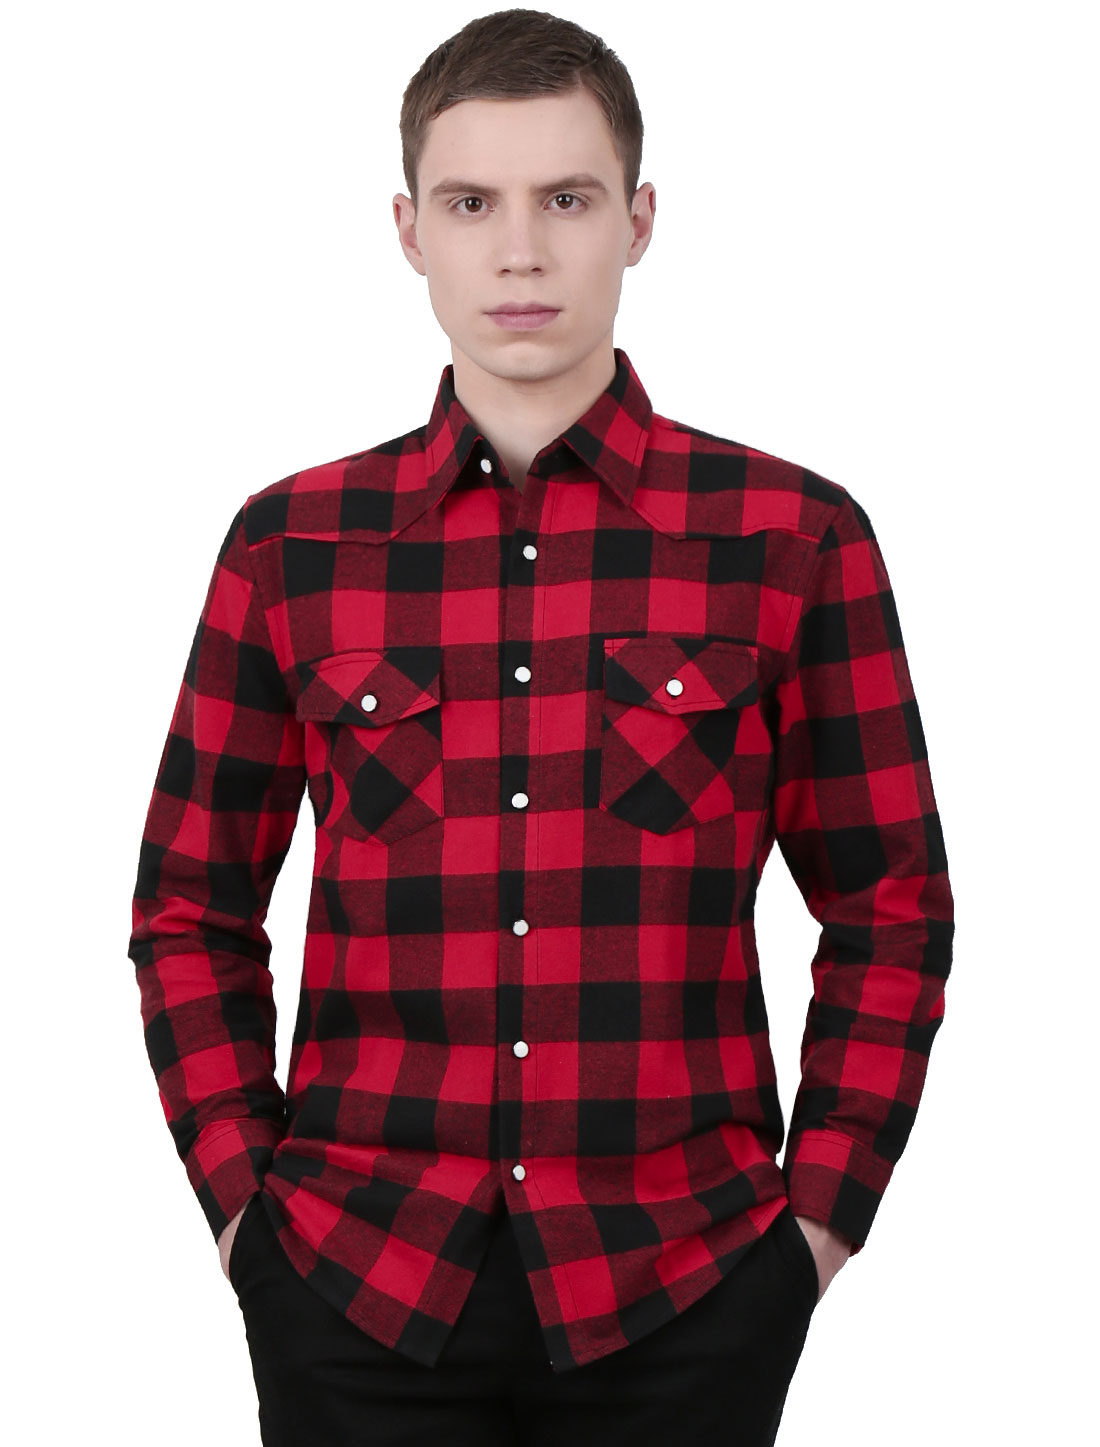 Men Long Sleeve Chest Pockets Button Down Slim Fit Shirt Red Black L